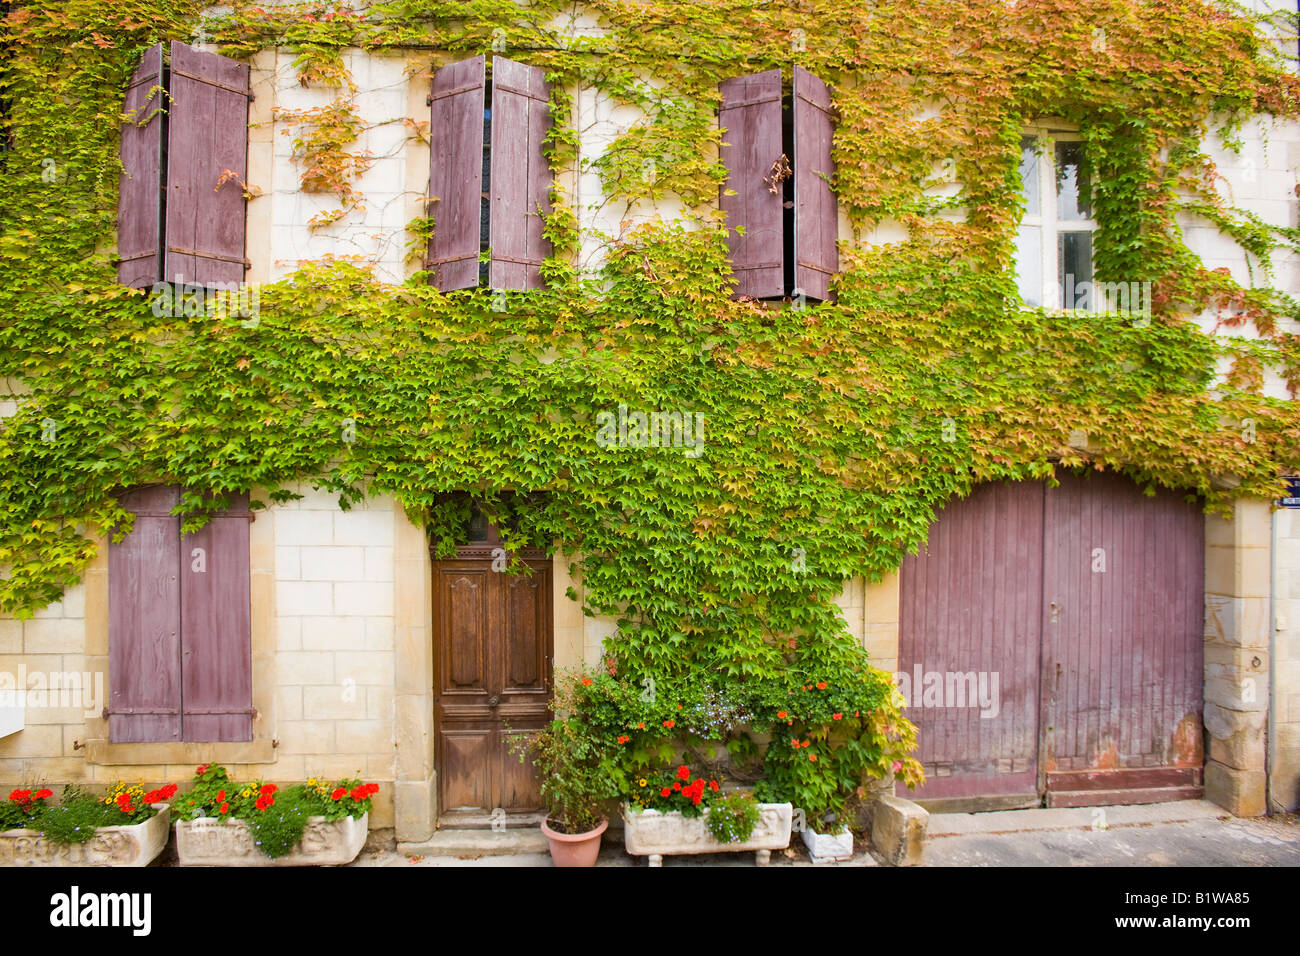 France Languedoc Roussillon Detail of house covered in virginia creeper - Stock Image